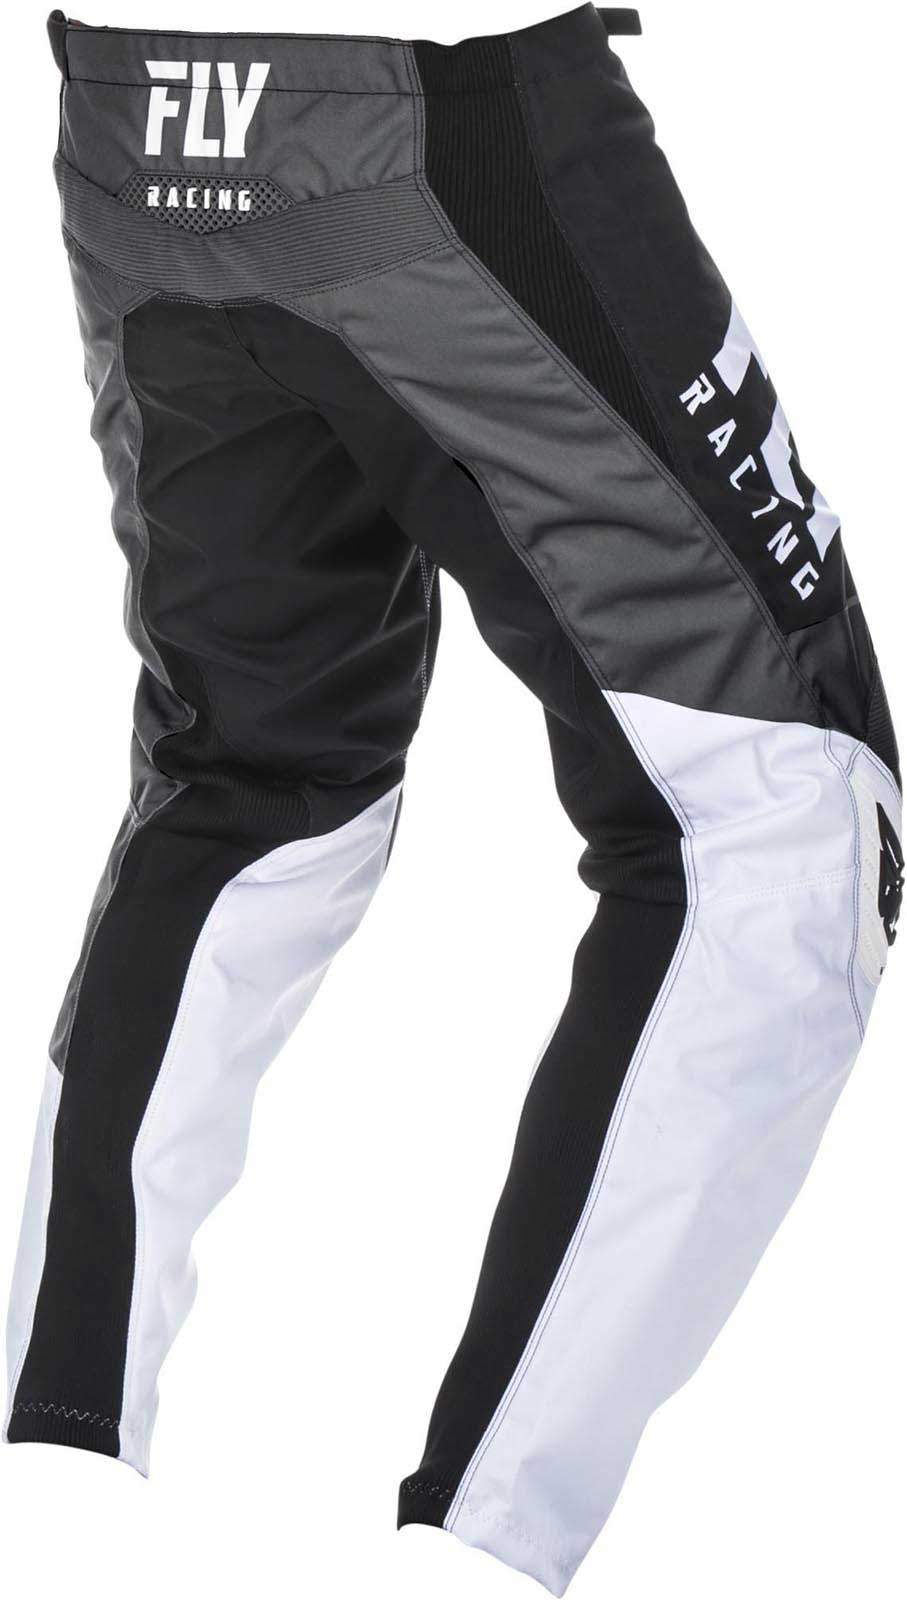 2019 Fly Racing Youth F-16 Pants Motocross Dirtbike Offroad